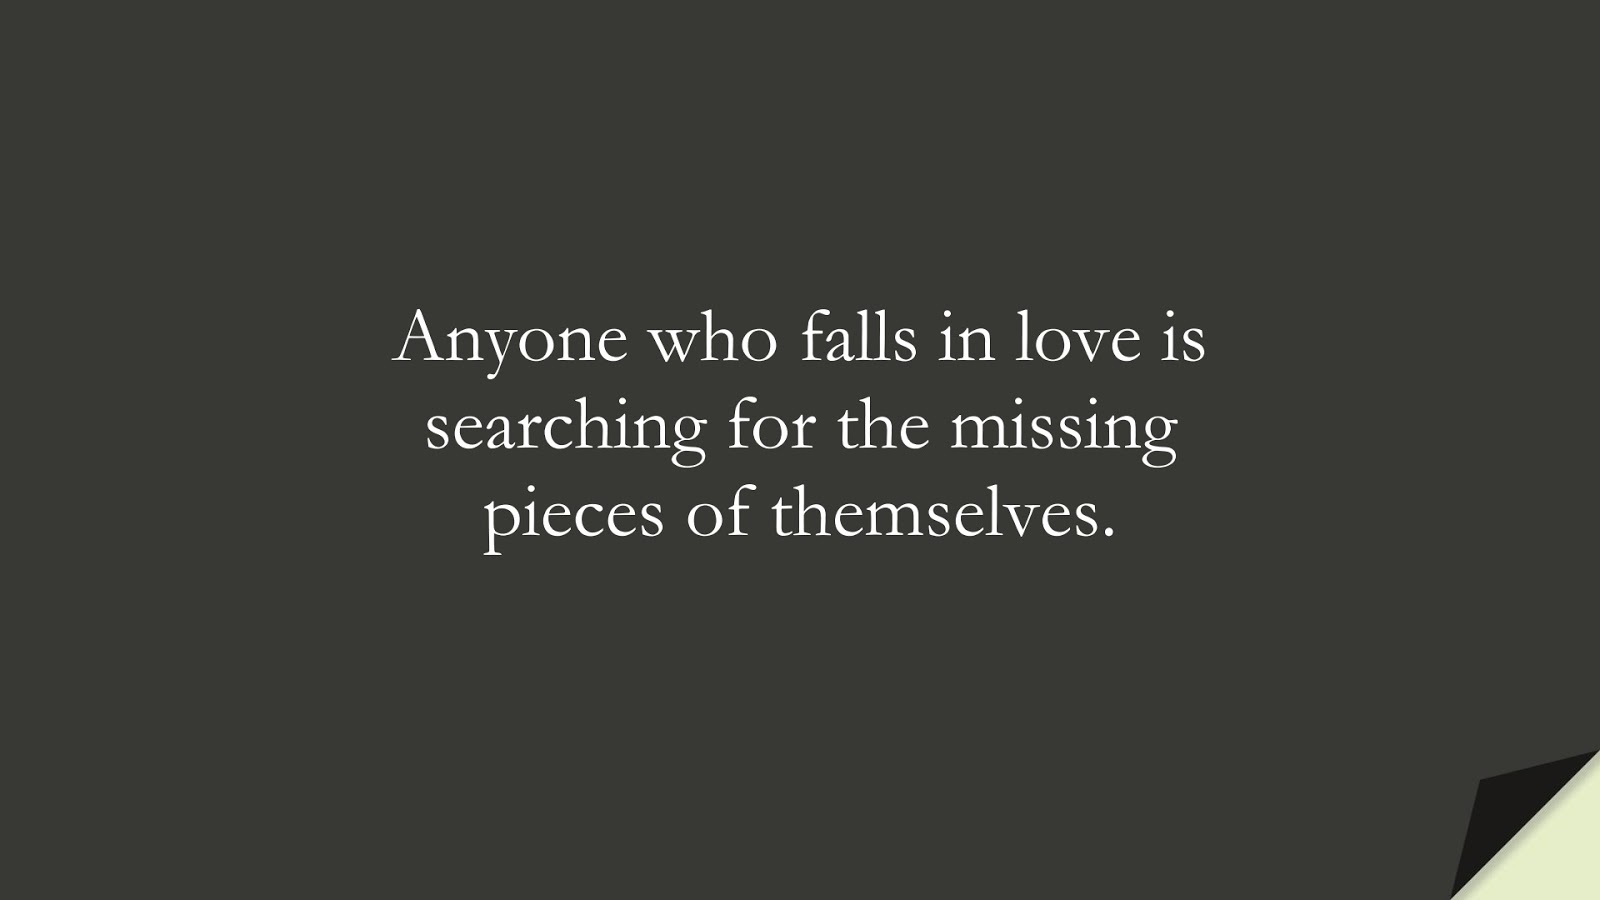 Anyone who falls in love is searching for the missing pieces of themselves.FALSE